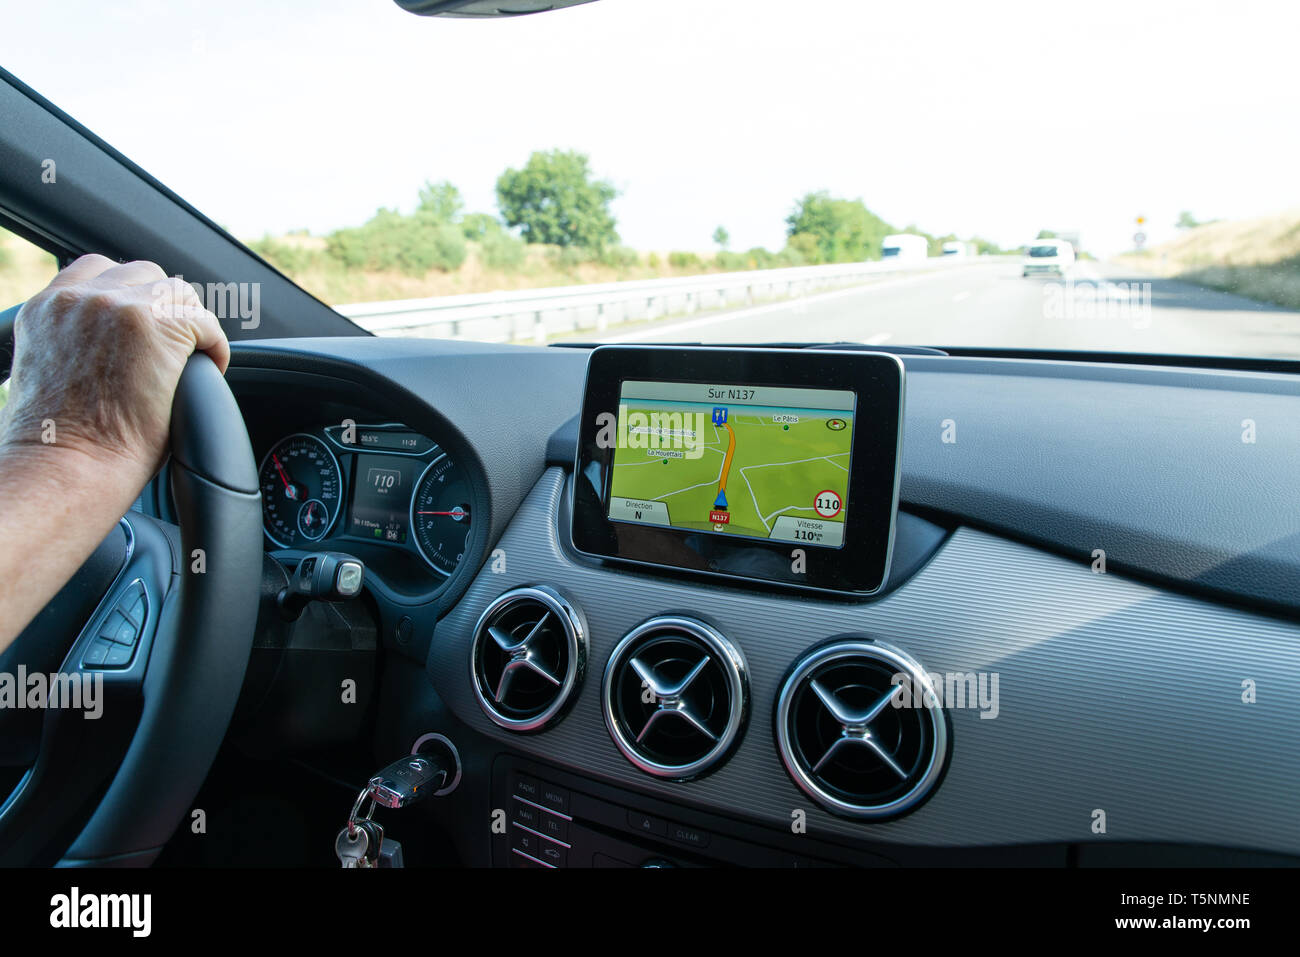 GPS unit in a Mercedes on  road in France. - Stock Image